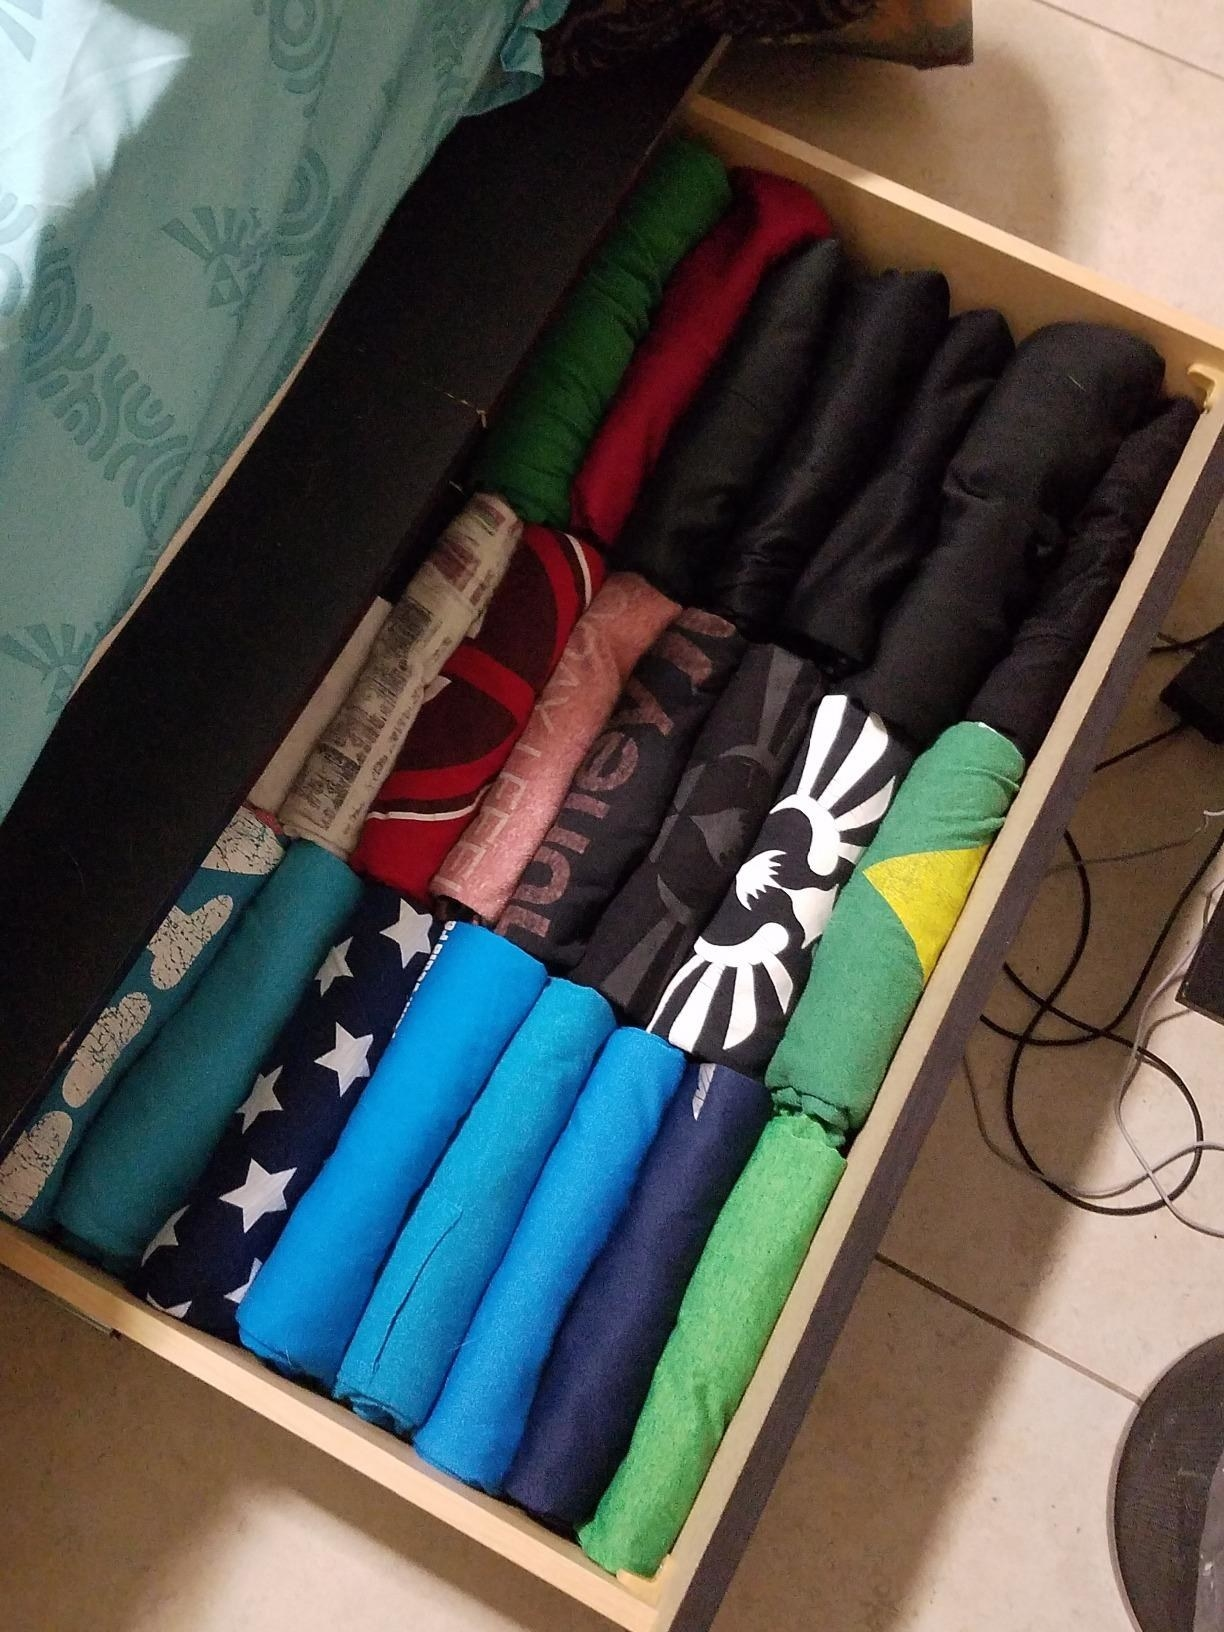 Reviewer image of a drawer full of perfectly folded shirts